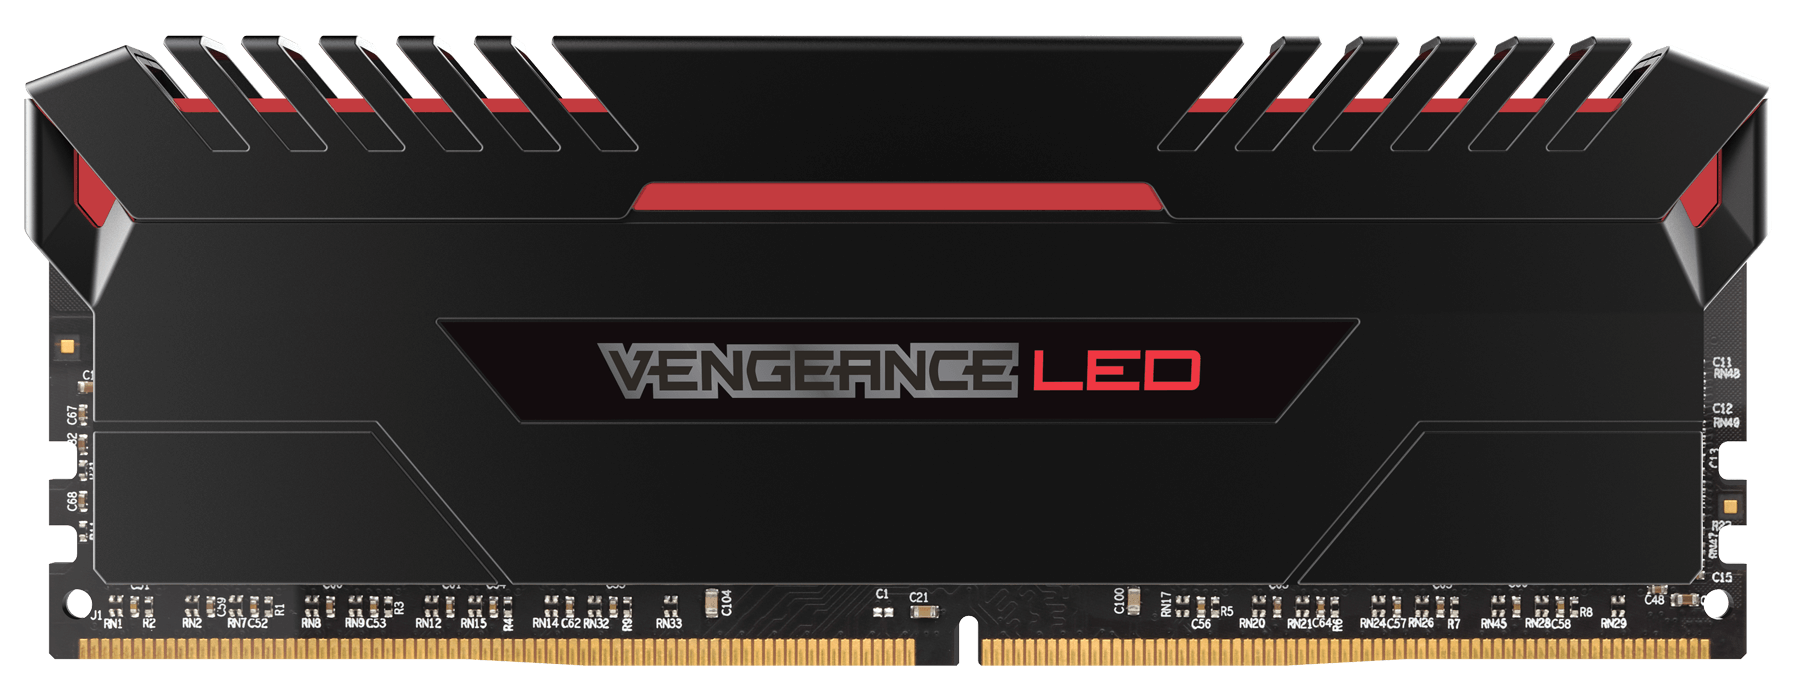 Memorie Desktop Corsair Vengeance LED 32GB (2 x 16GB) DDR4 3200MHz Red